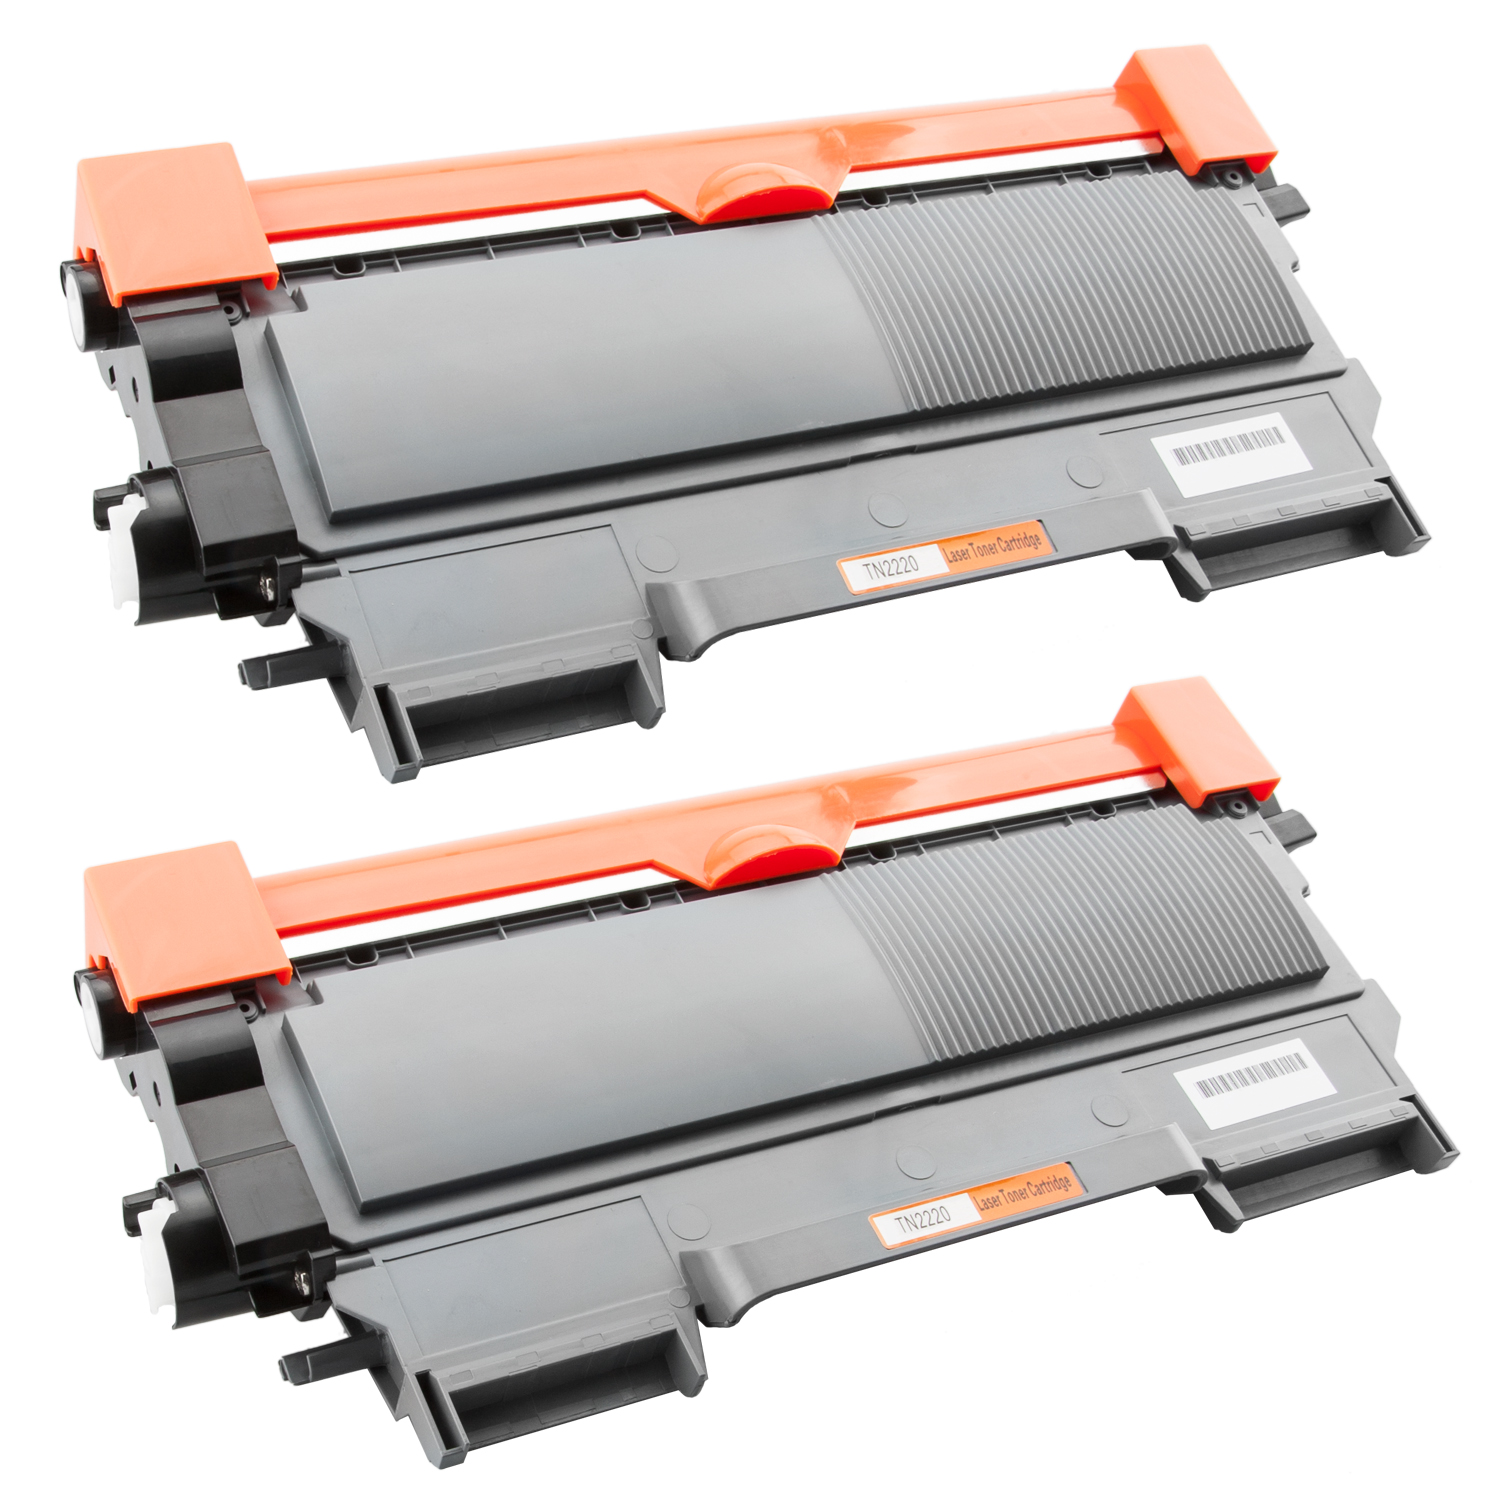 2x Toner XL ProSerie kompatibel zu Brother TN-2220